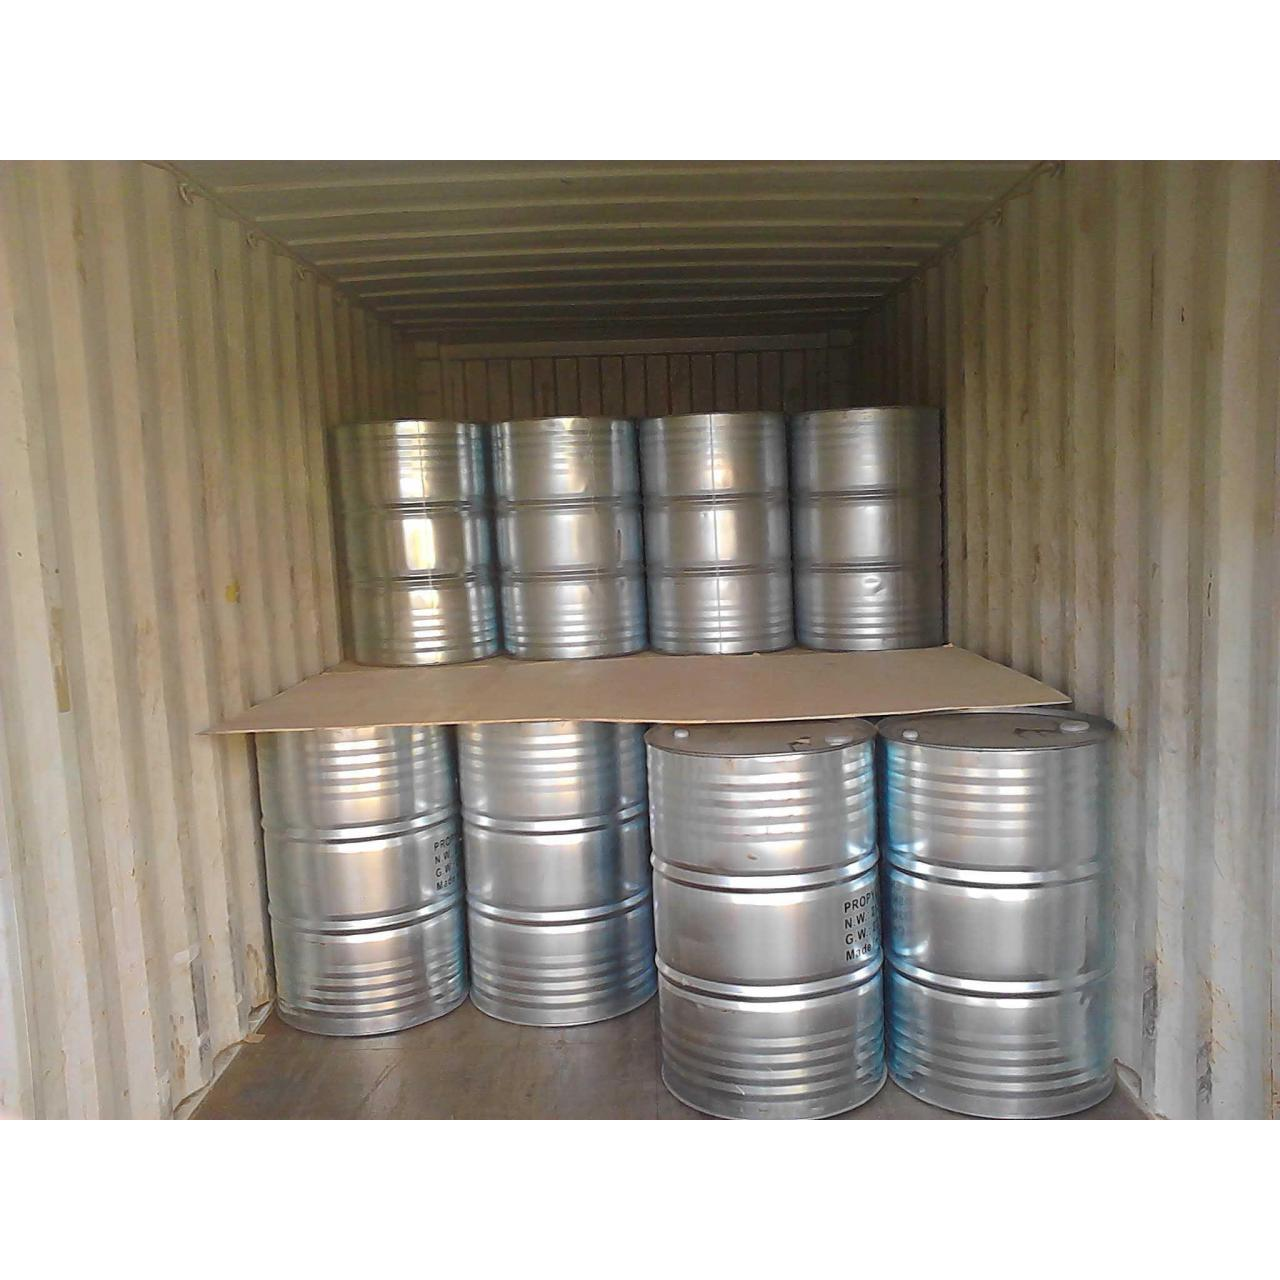 Quality Propylene glycol for sale